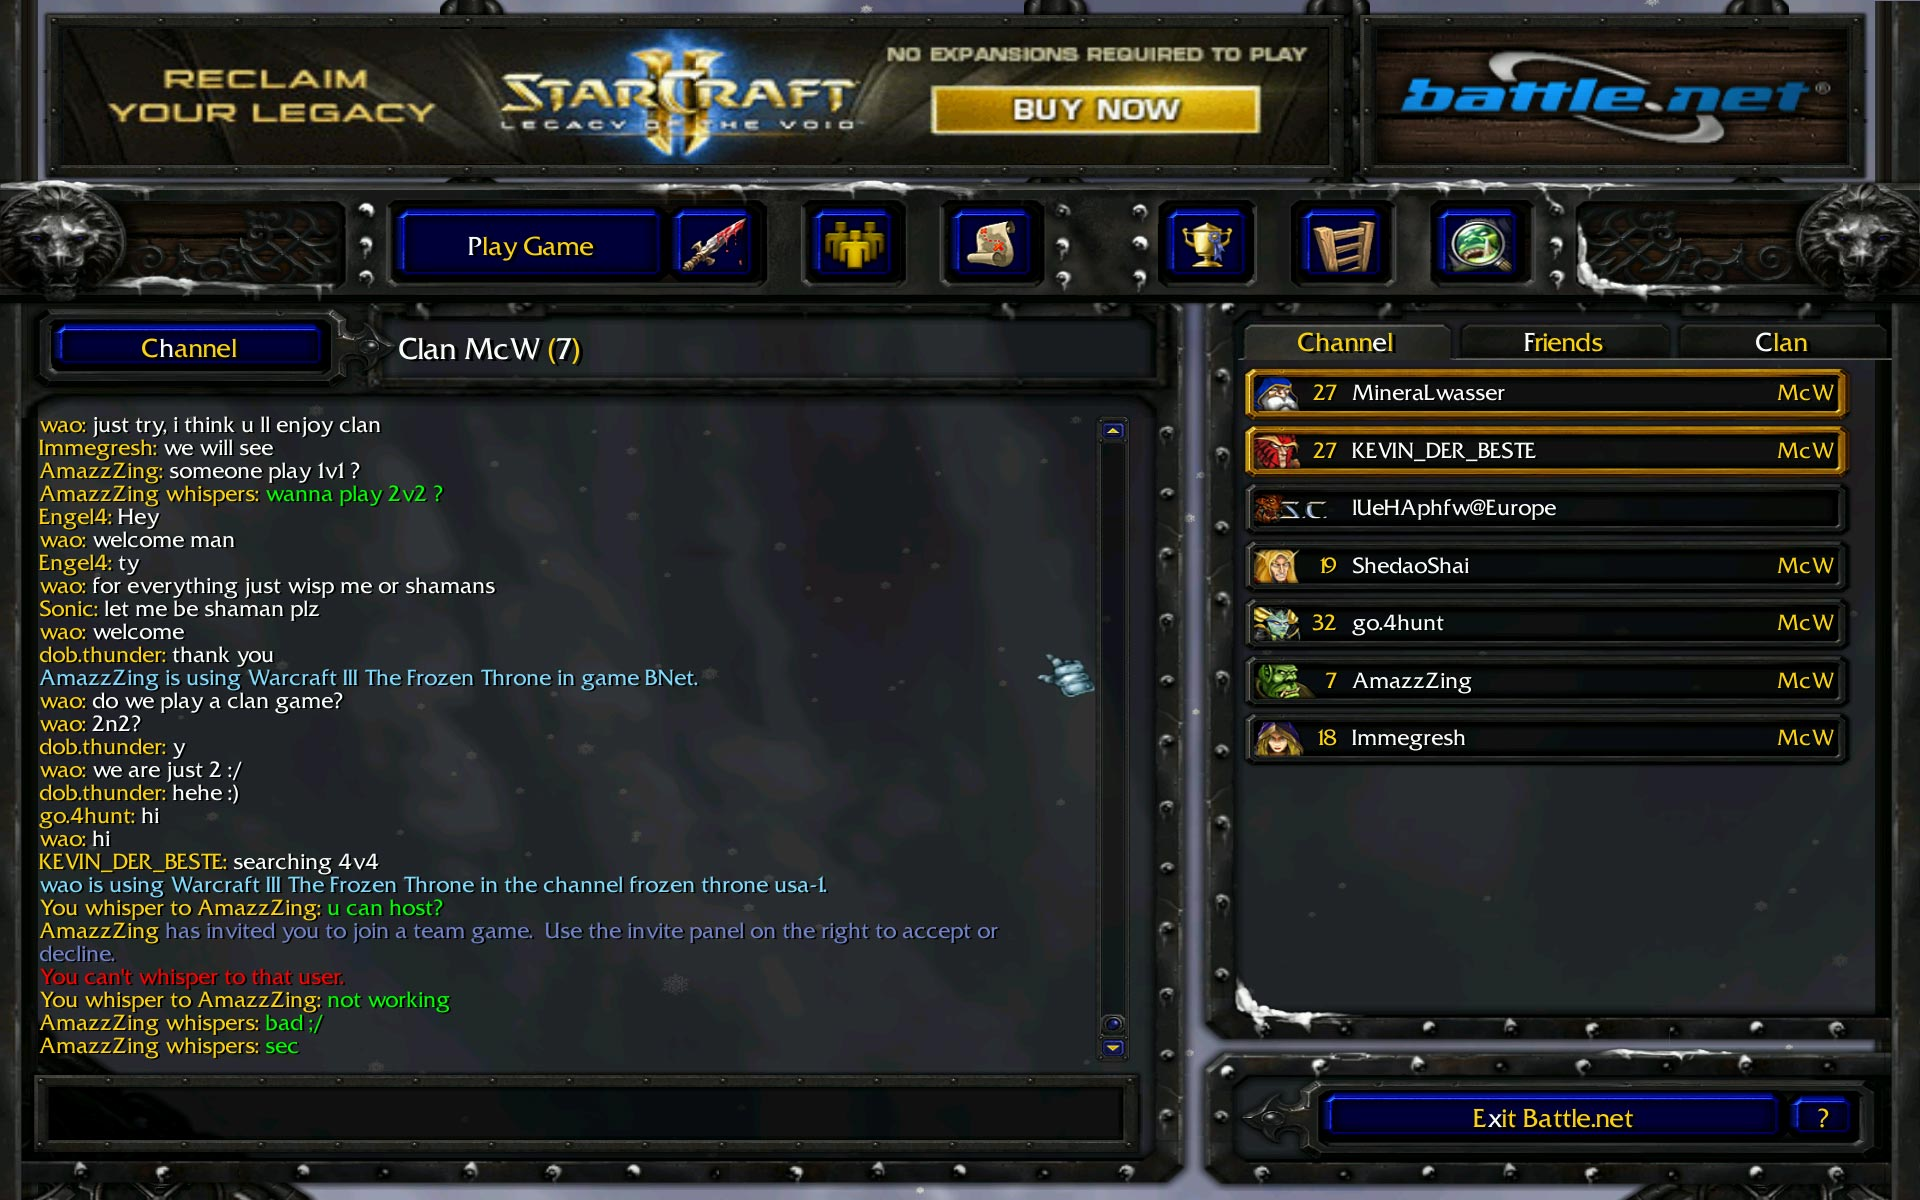 warcraft-3-full-clan-chat-mcw-arranged-team